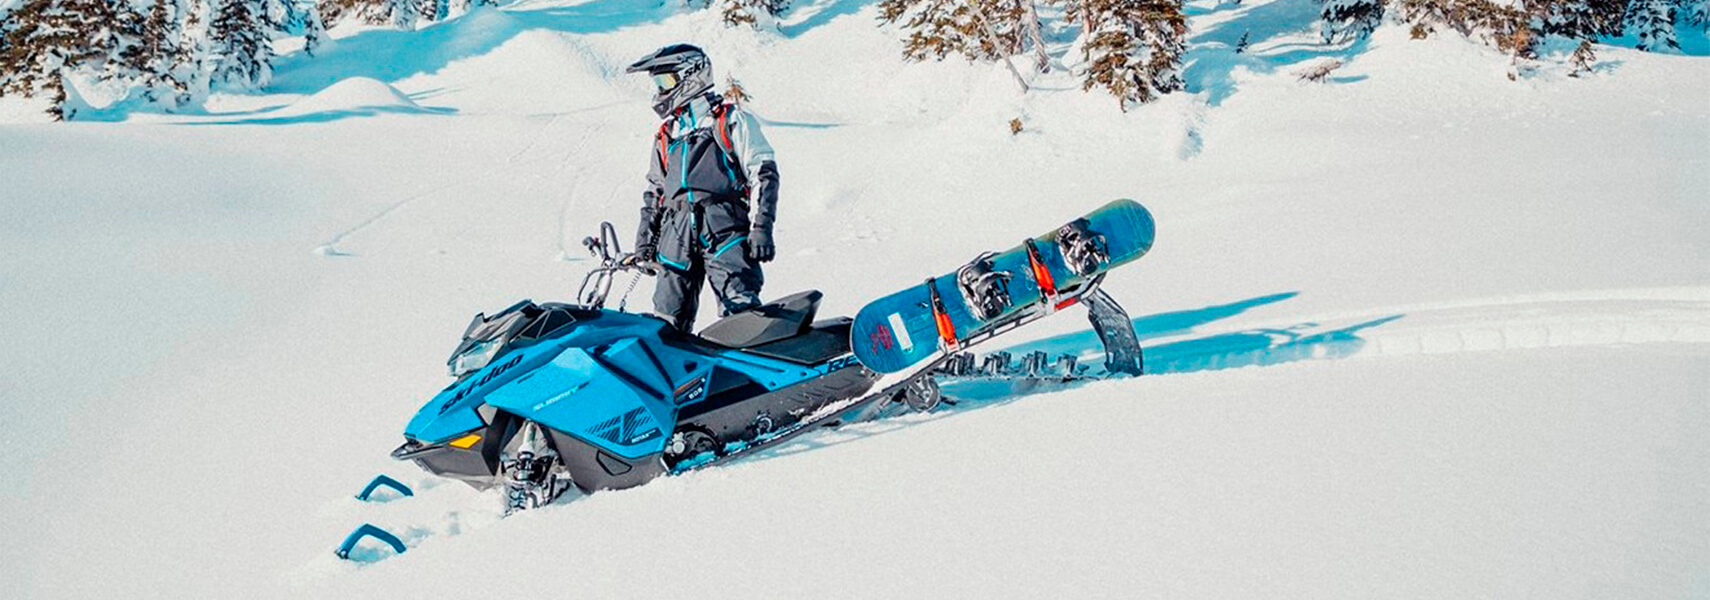 Ski-Doo - 2020 Summit SP